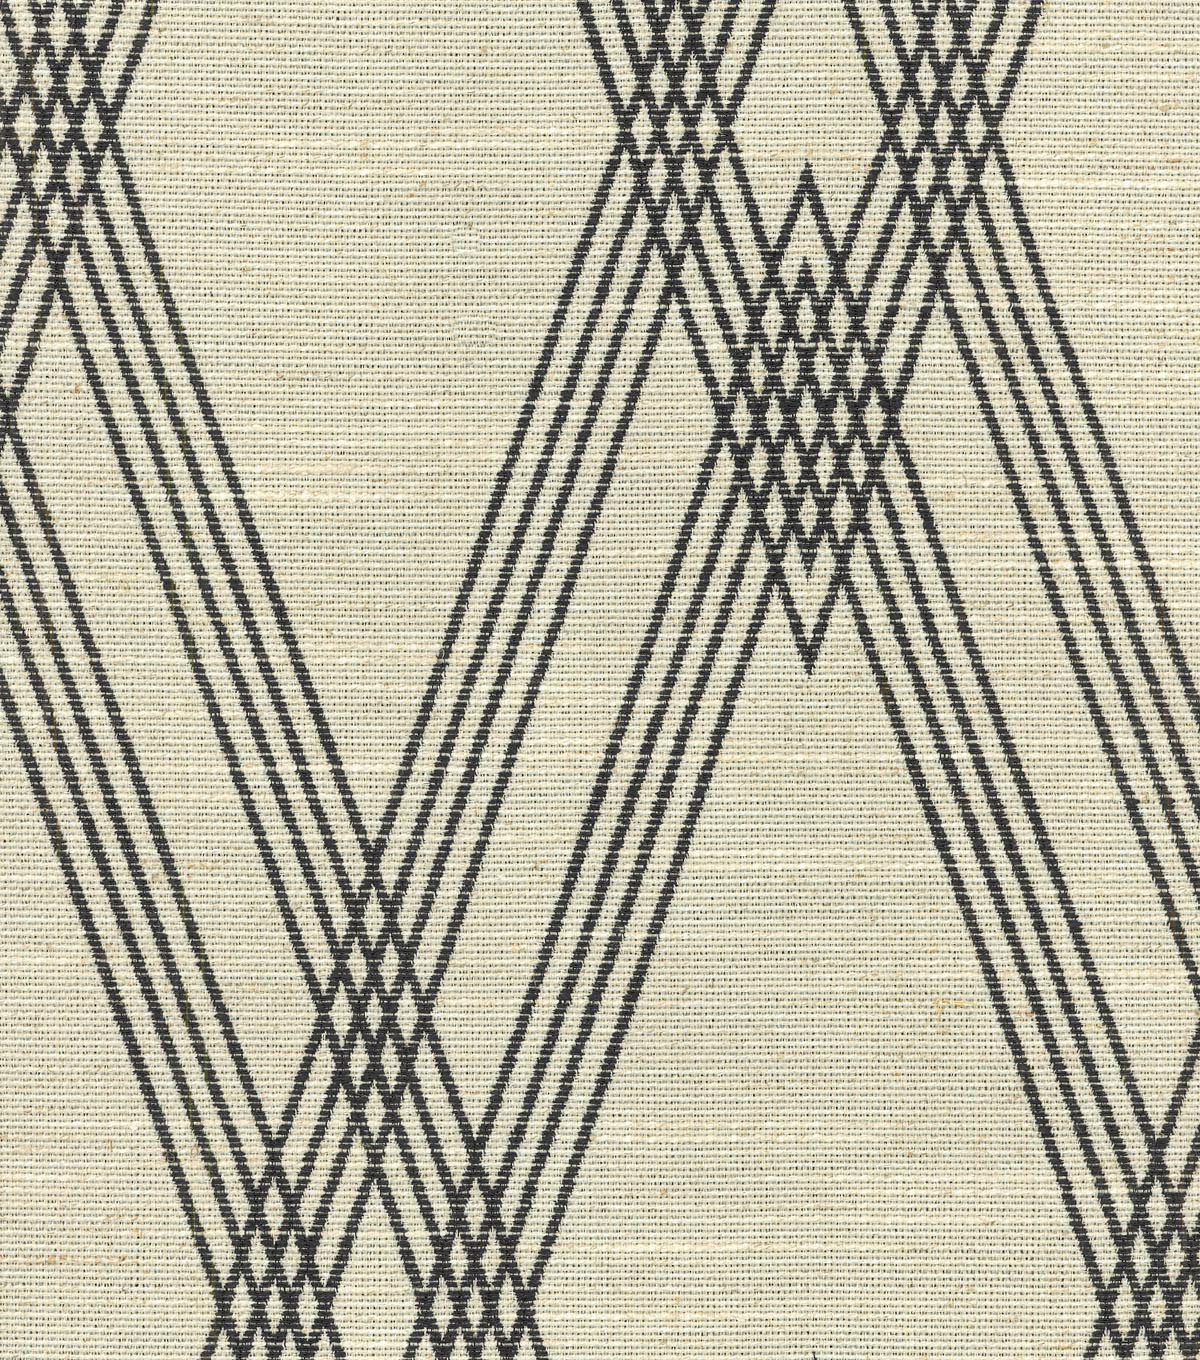 Nate Berkus Upholstery Fabric-Wareham Black/Bone